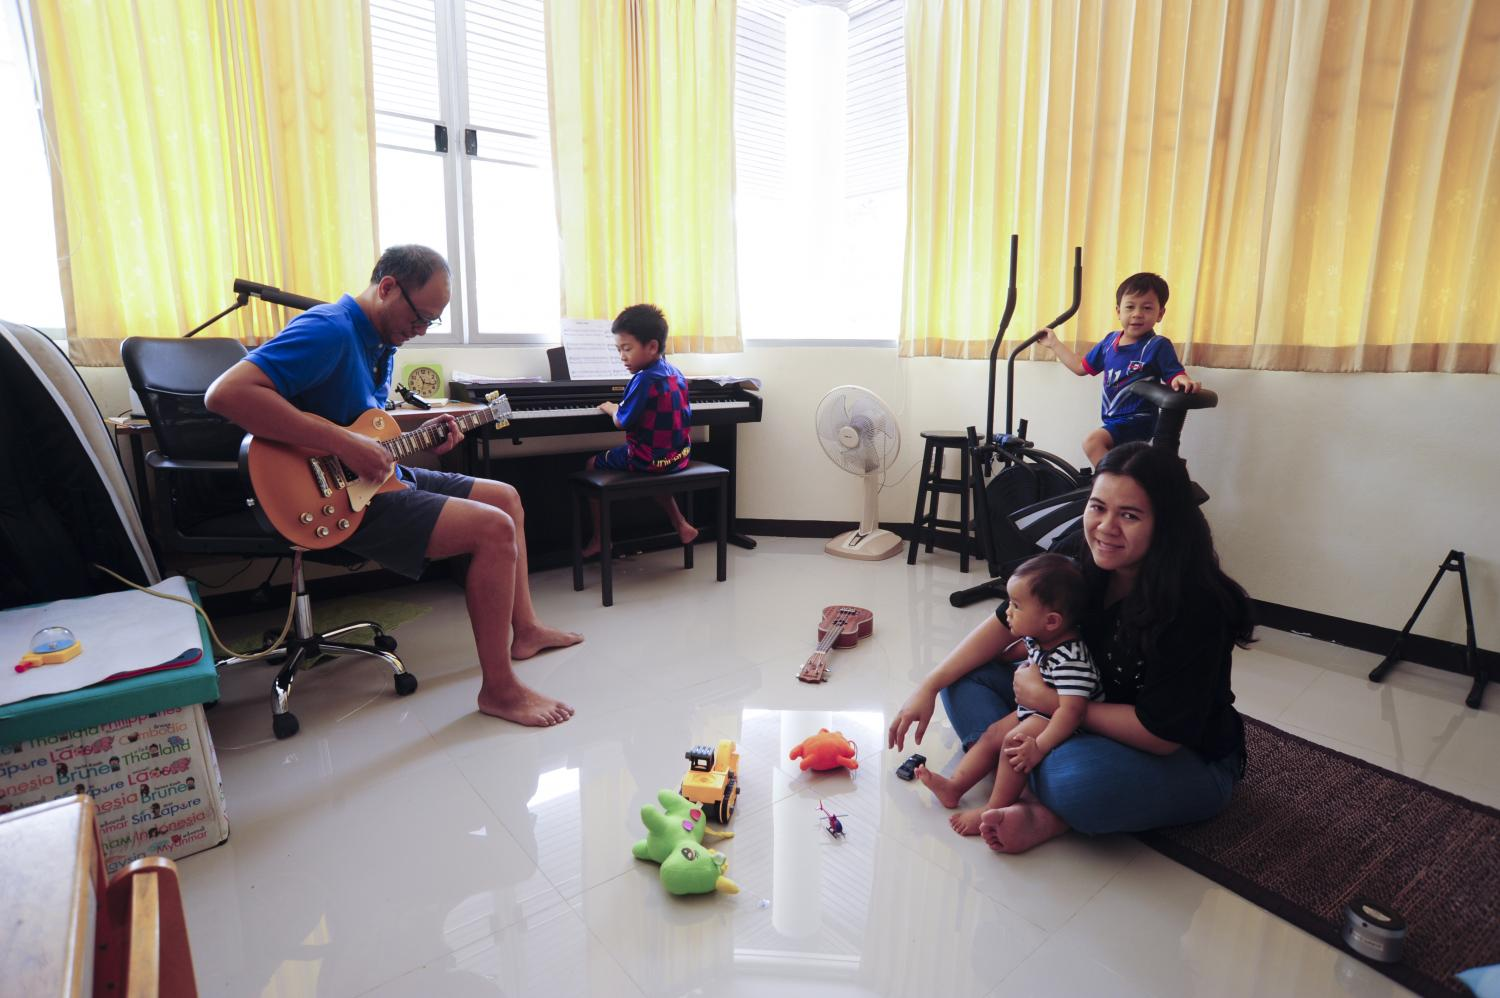 QUALITY TIME: Dawee Chaikere, 39, and her husband, spend time with their three children at their home in Nonthaburi during their stay at home to help contain the outbreak of Covid-19. She admits that it is a challenge to find activities to keep three young sons happy, busy and learning at the same time.